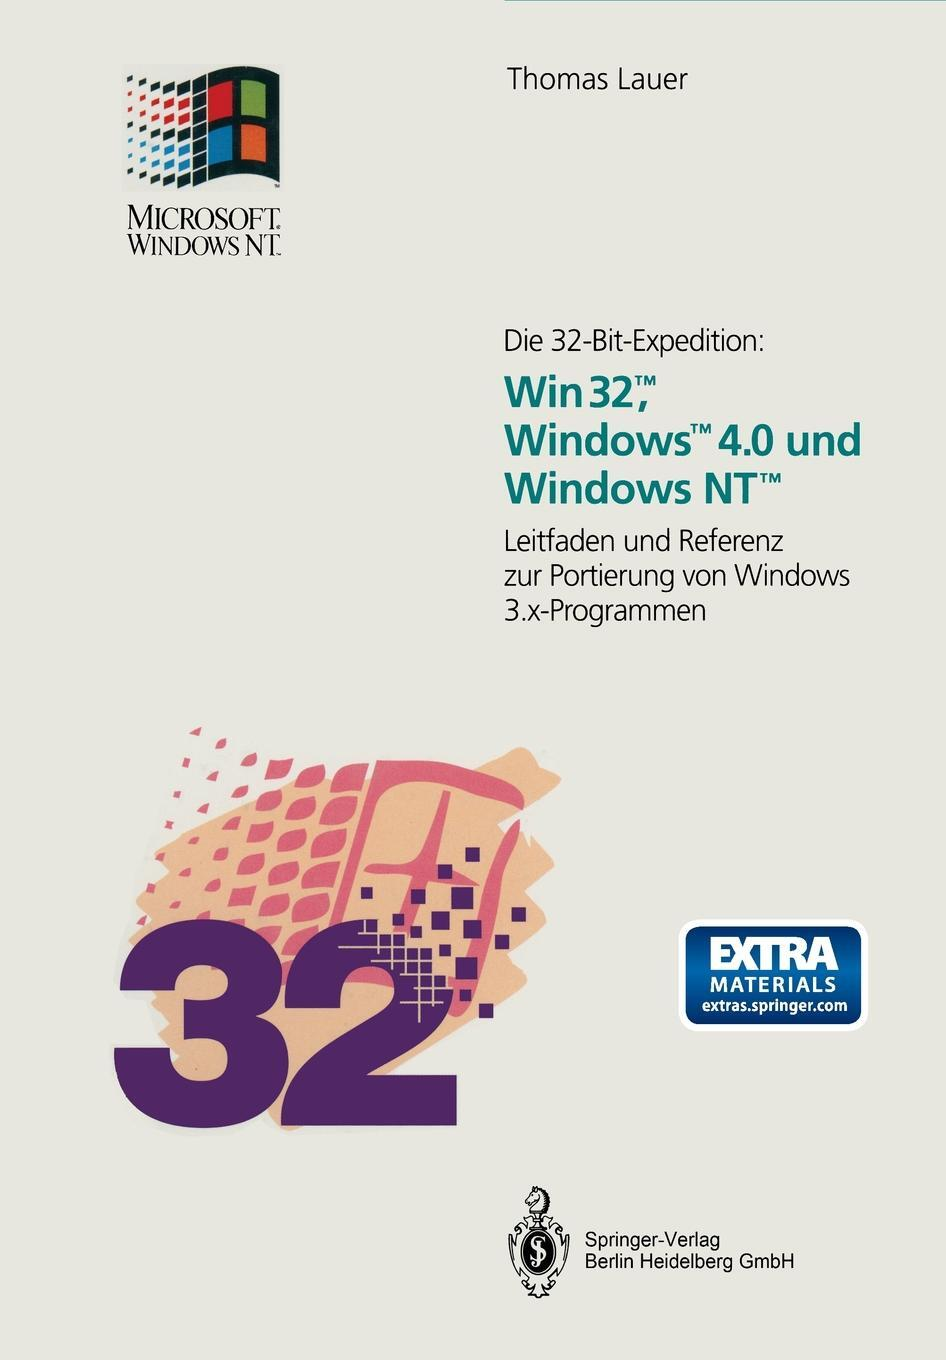 Thomas Lauer. Die 32-Bit-Expedition. Win32., Windows.4.0 und Windows NT. : Leitfaden und Referenz zur Portierung von Windows 3.x-Programmen